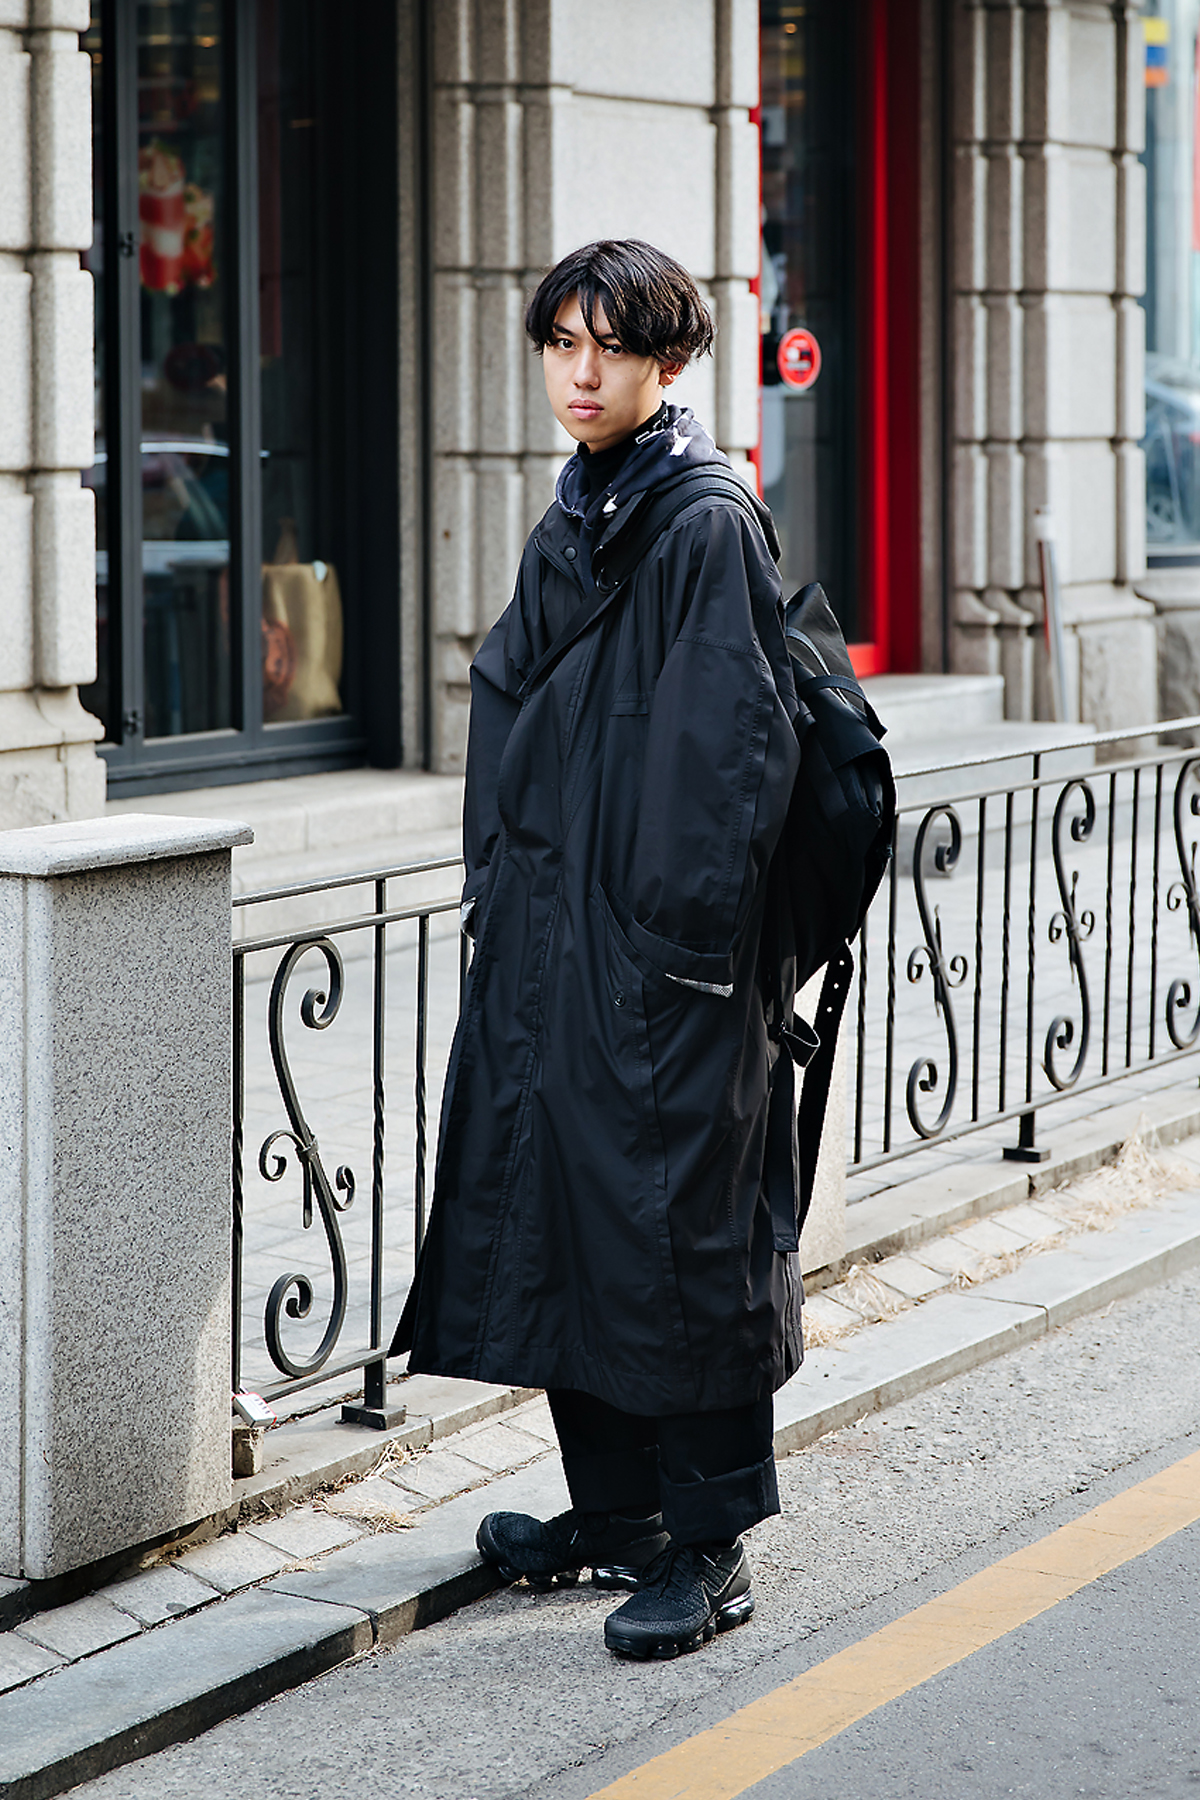 Inonno shota, Street style men winter 2017-2018 in seoul